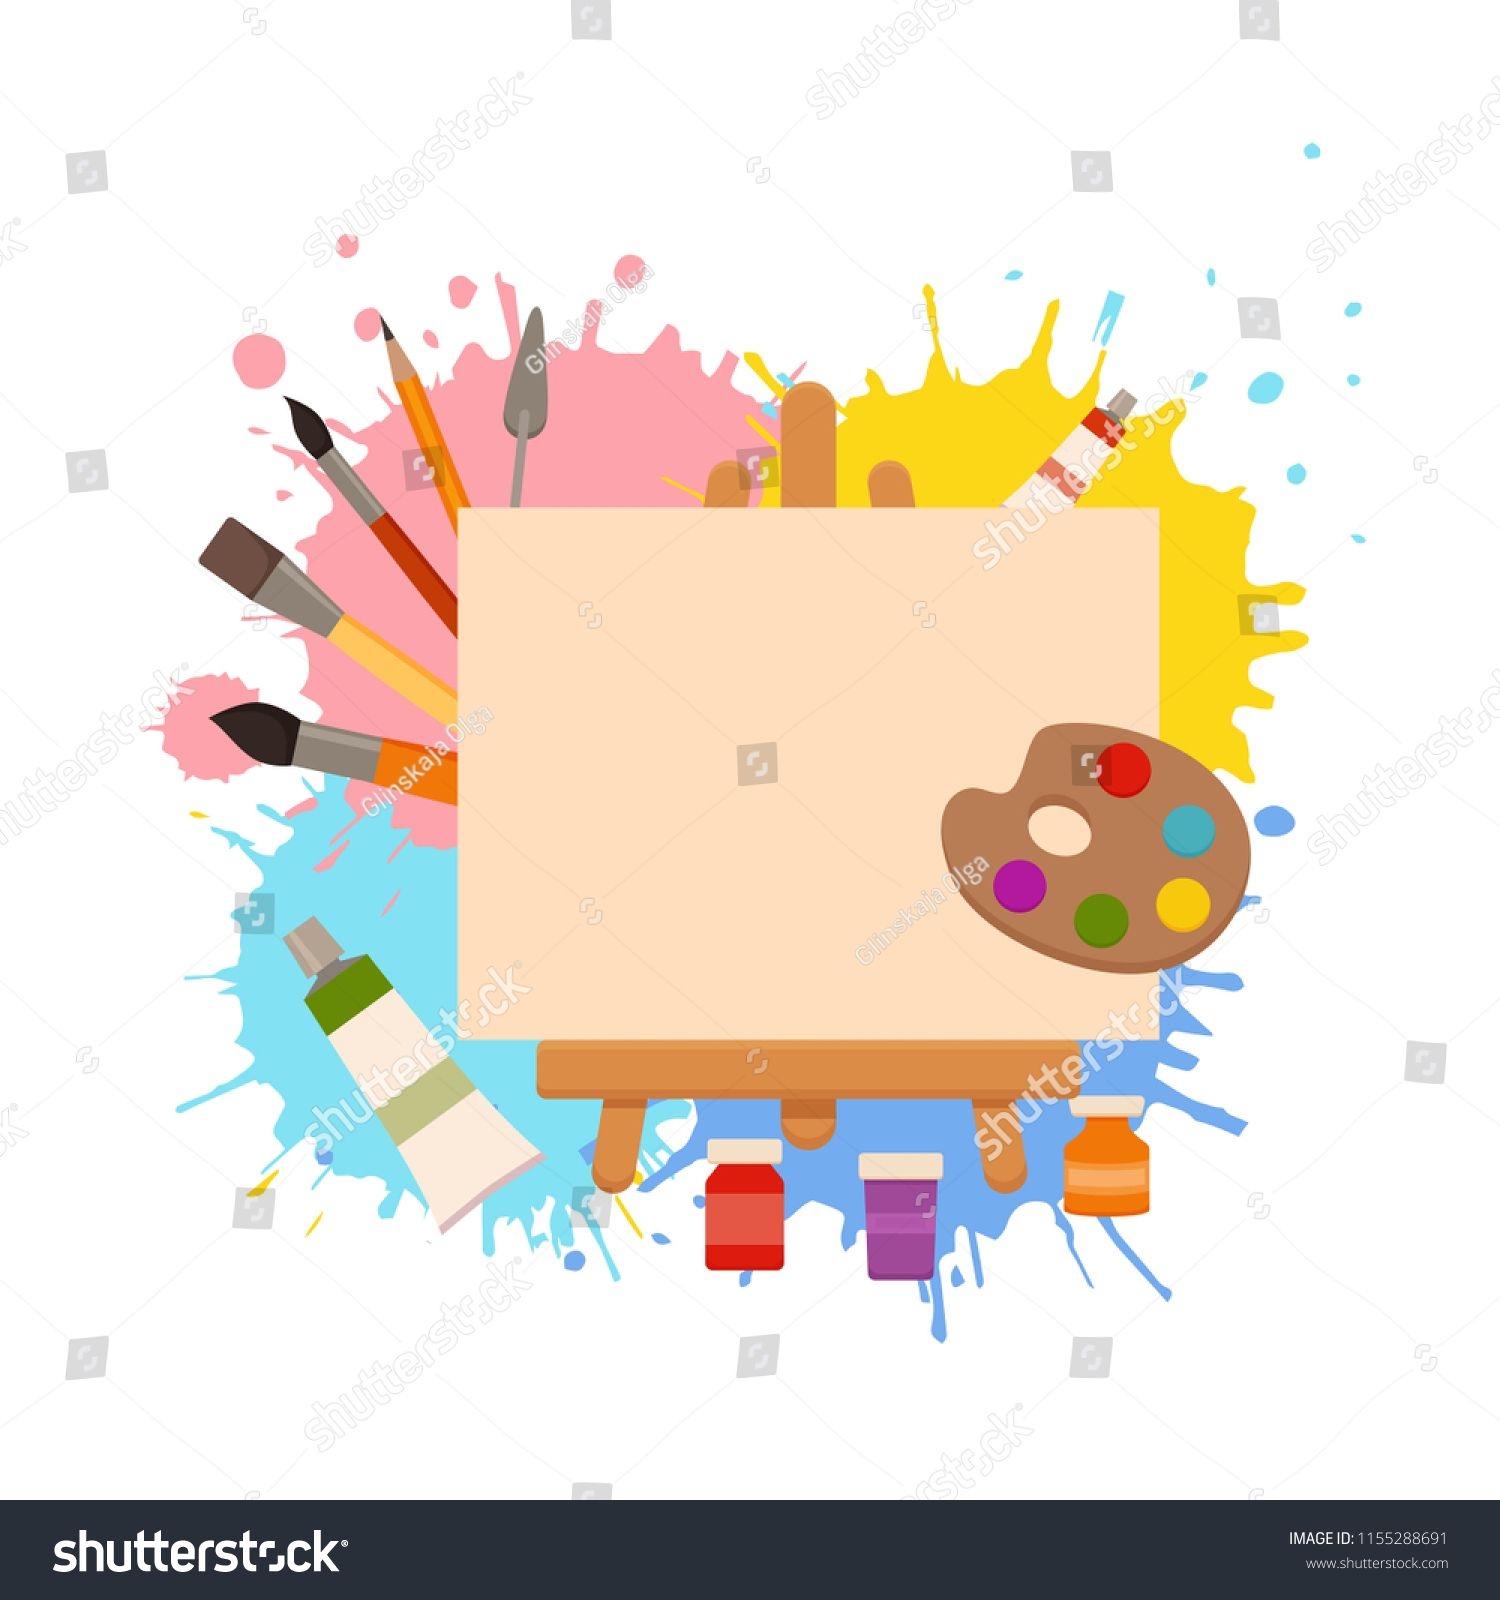 Painting Tools Elements Cartoon Colorful Vector Concept Art